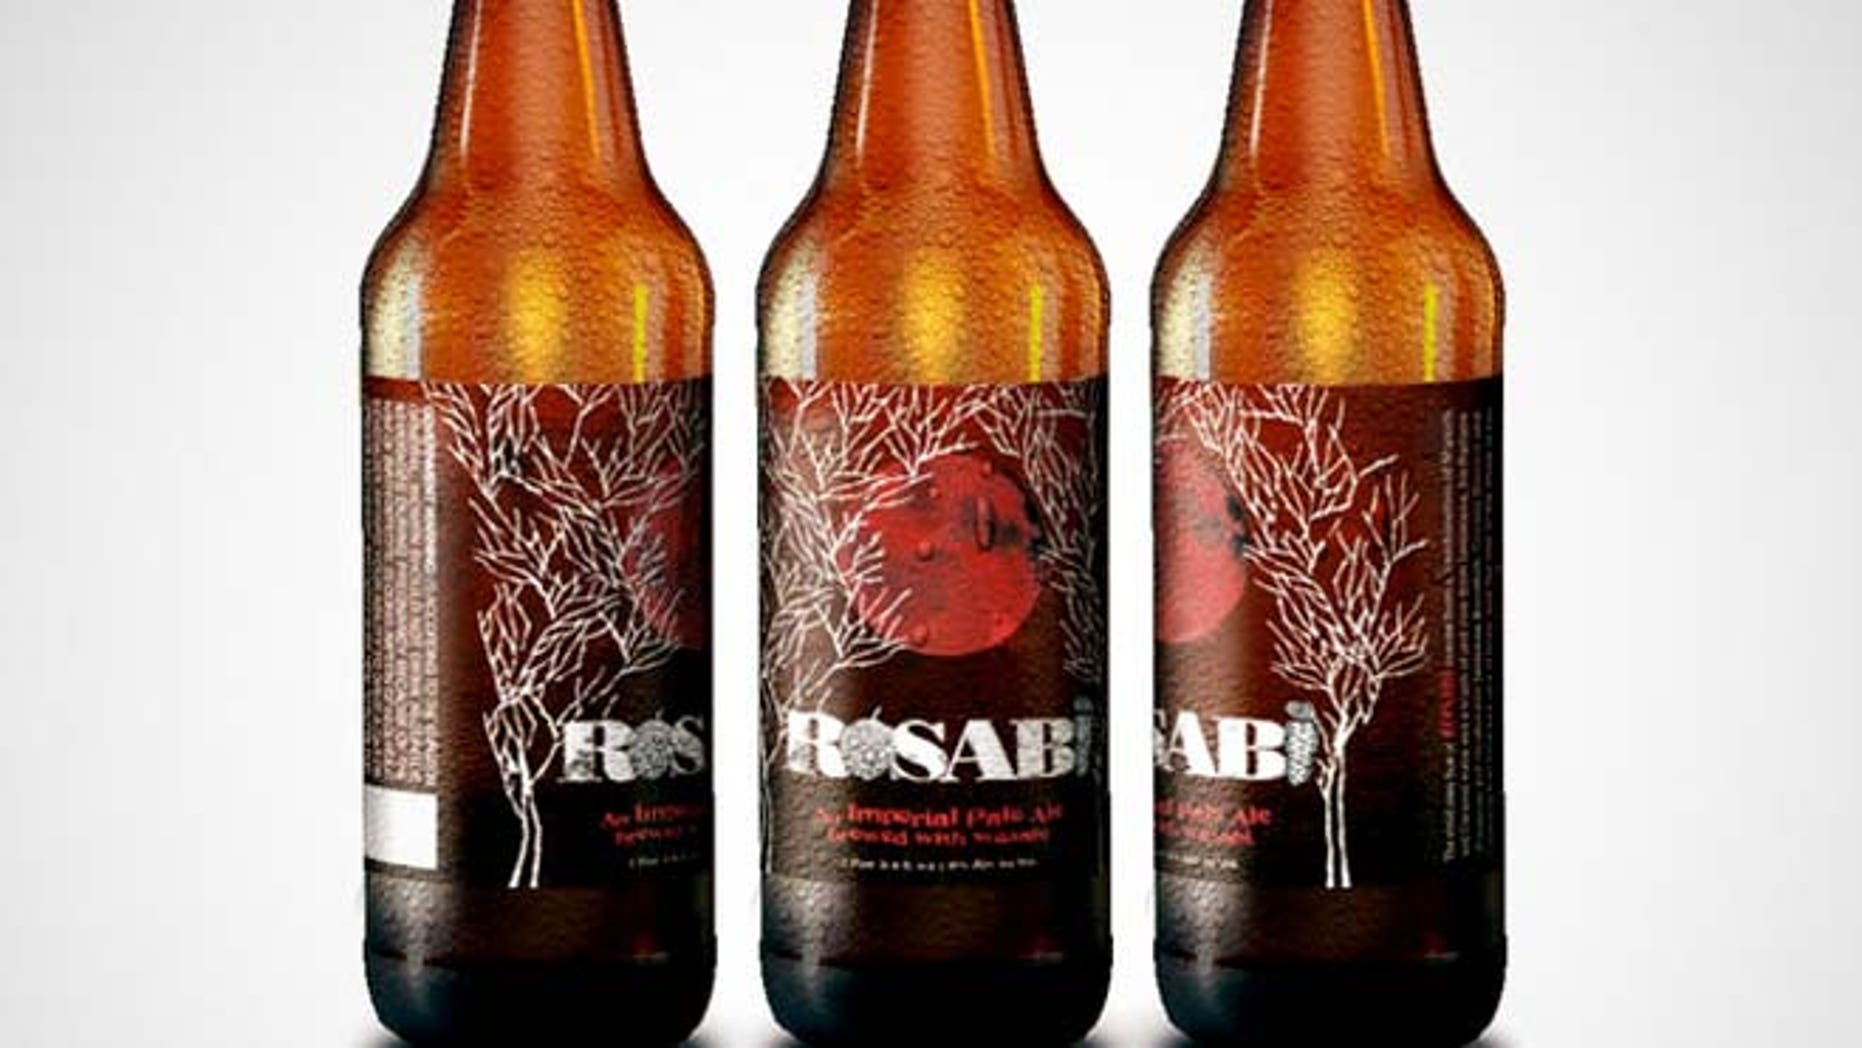 Dogfish Head Craft Brewery will release Rosabi, a new beer infused with wasabi.